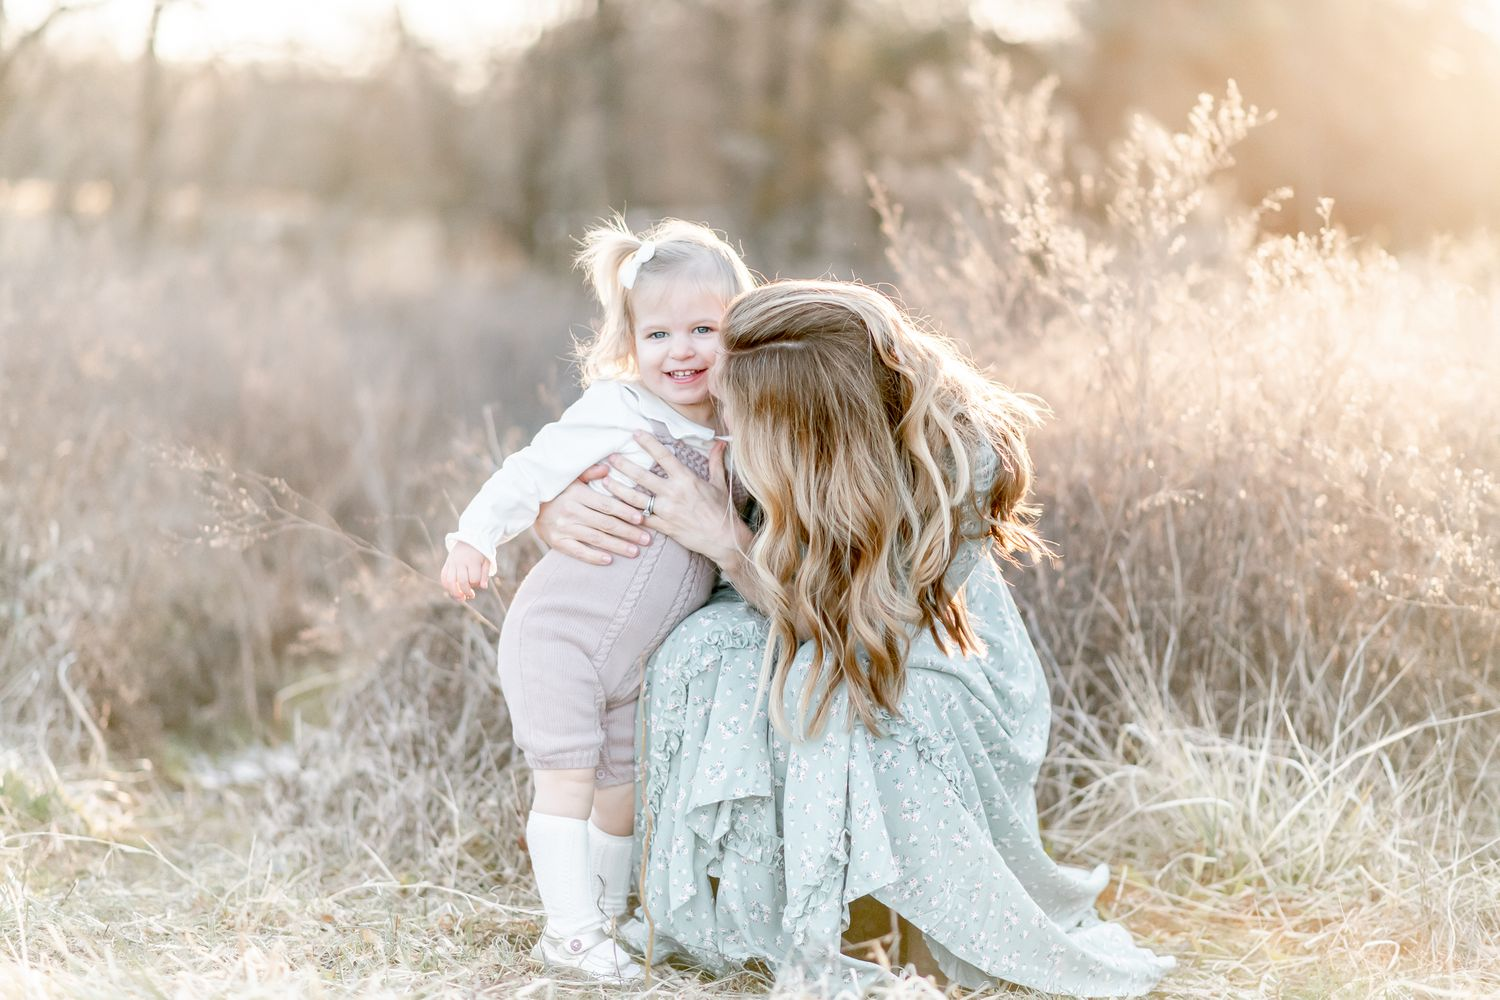 Mom snuggles with toddler girl in a field at sunset